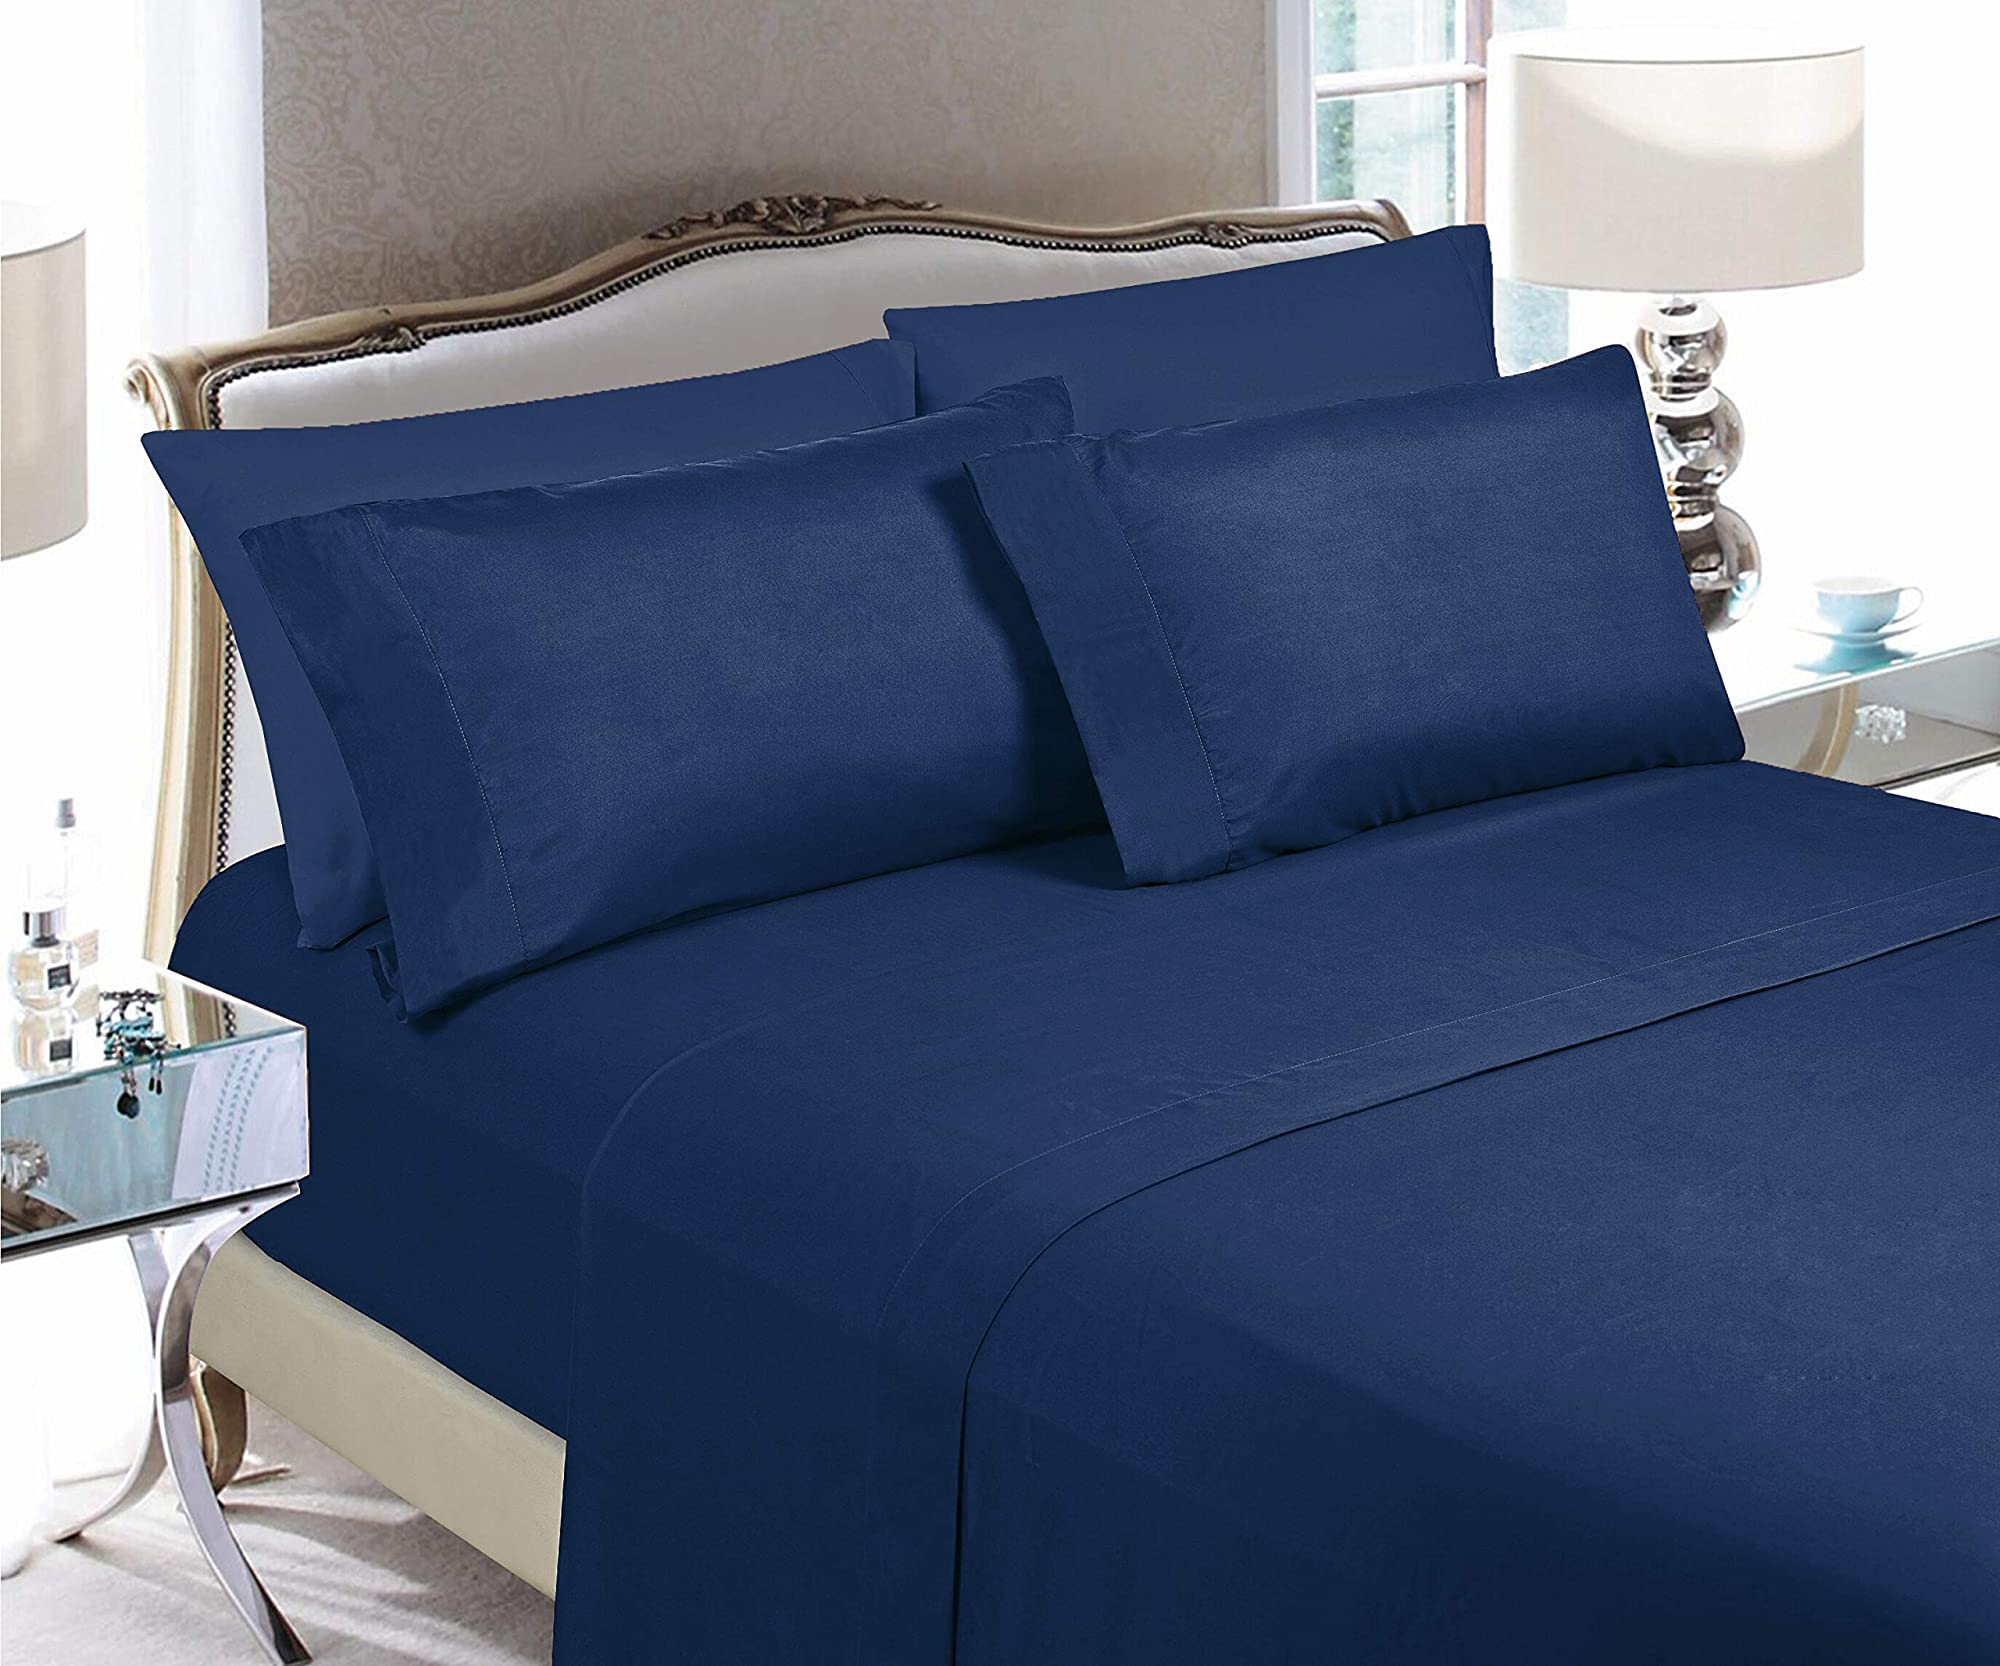 Elegant, Soft & Comfortable Bedding Set